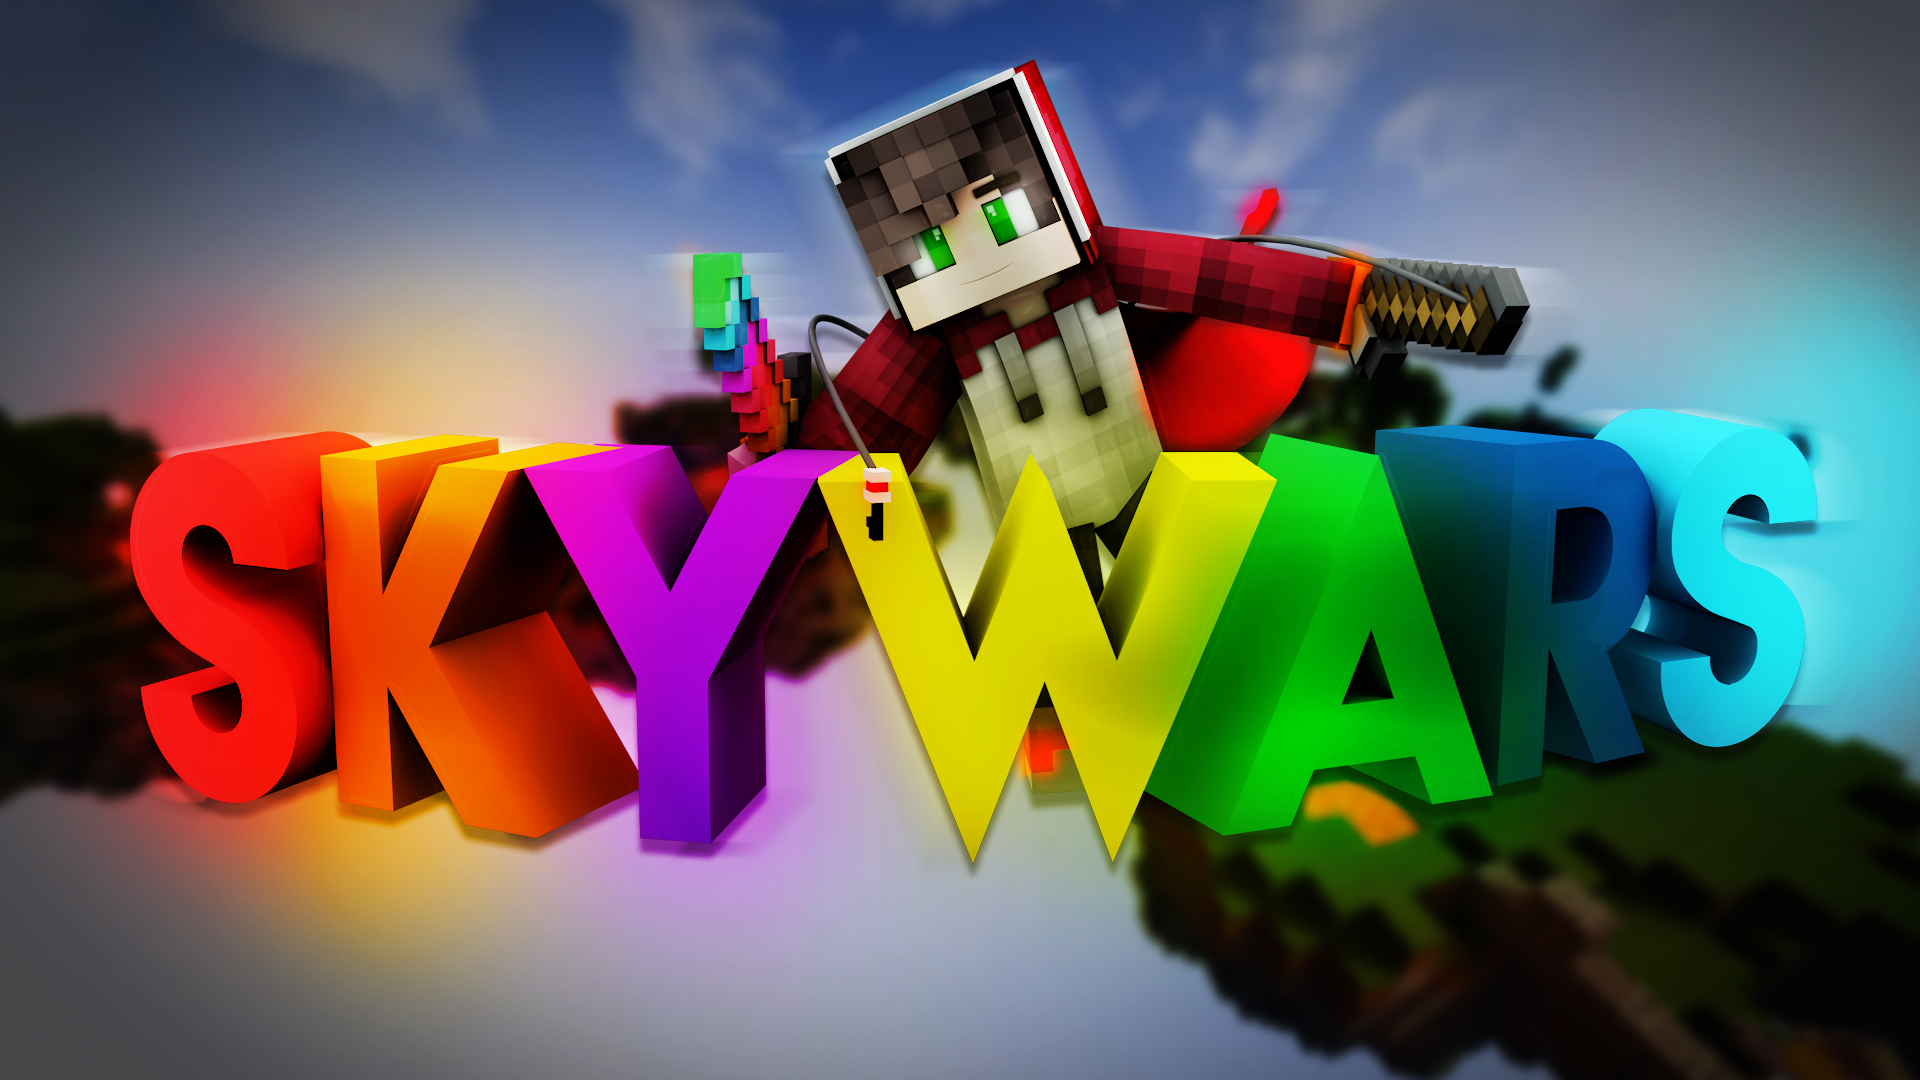 exported skywars